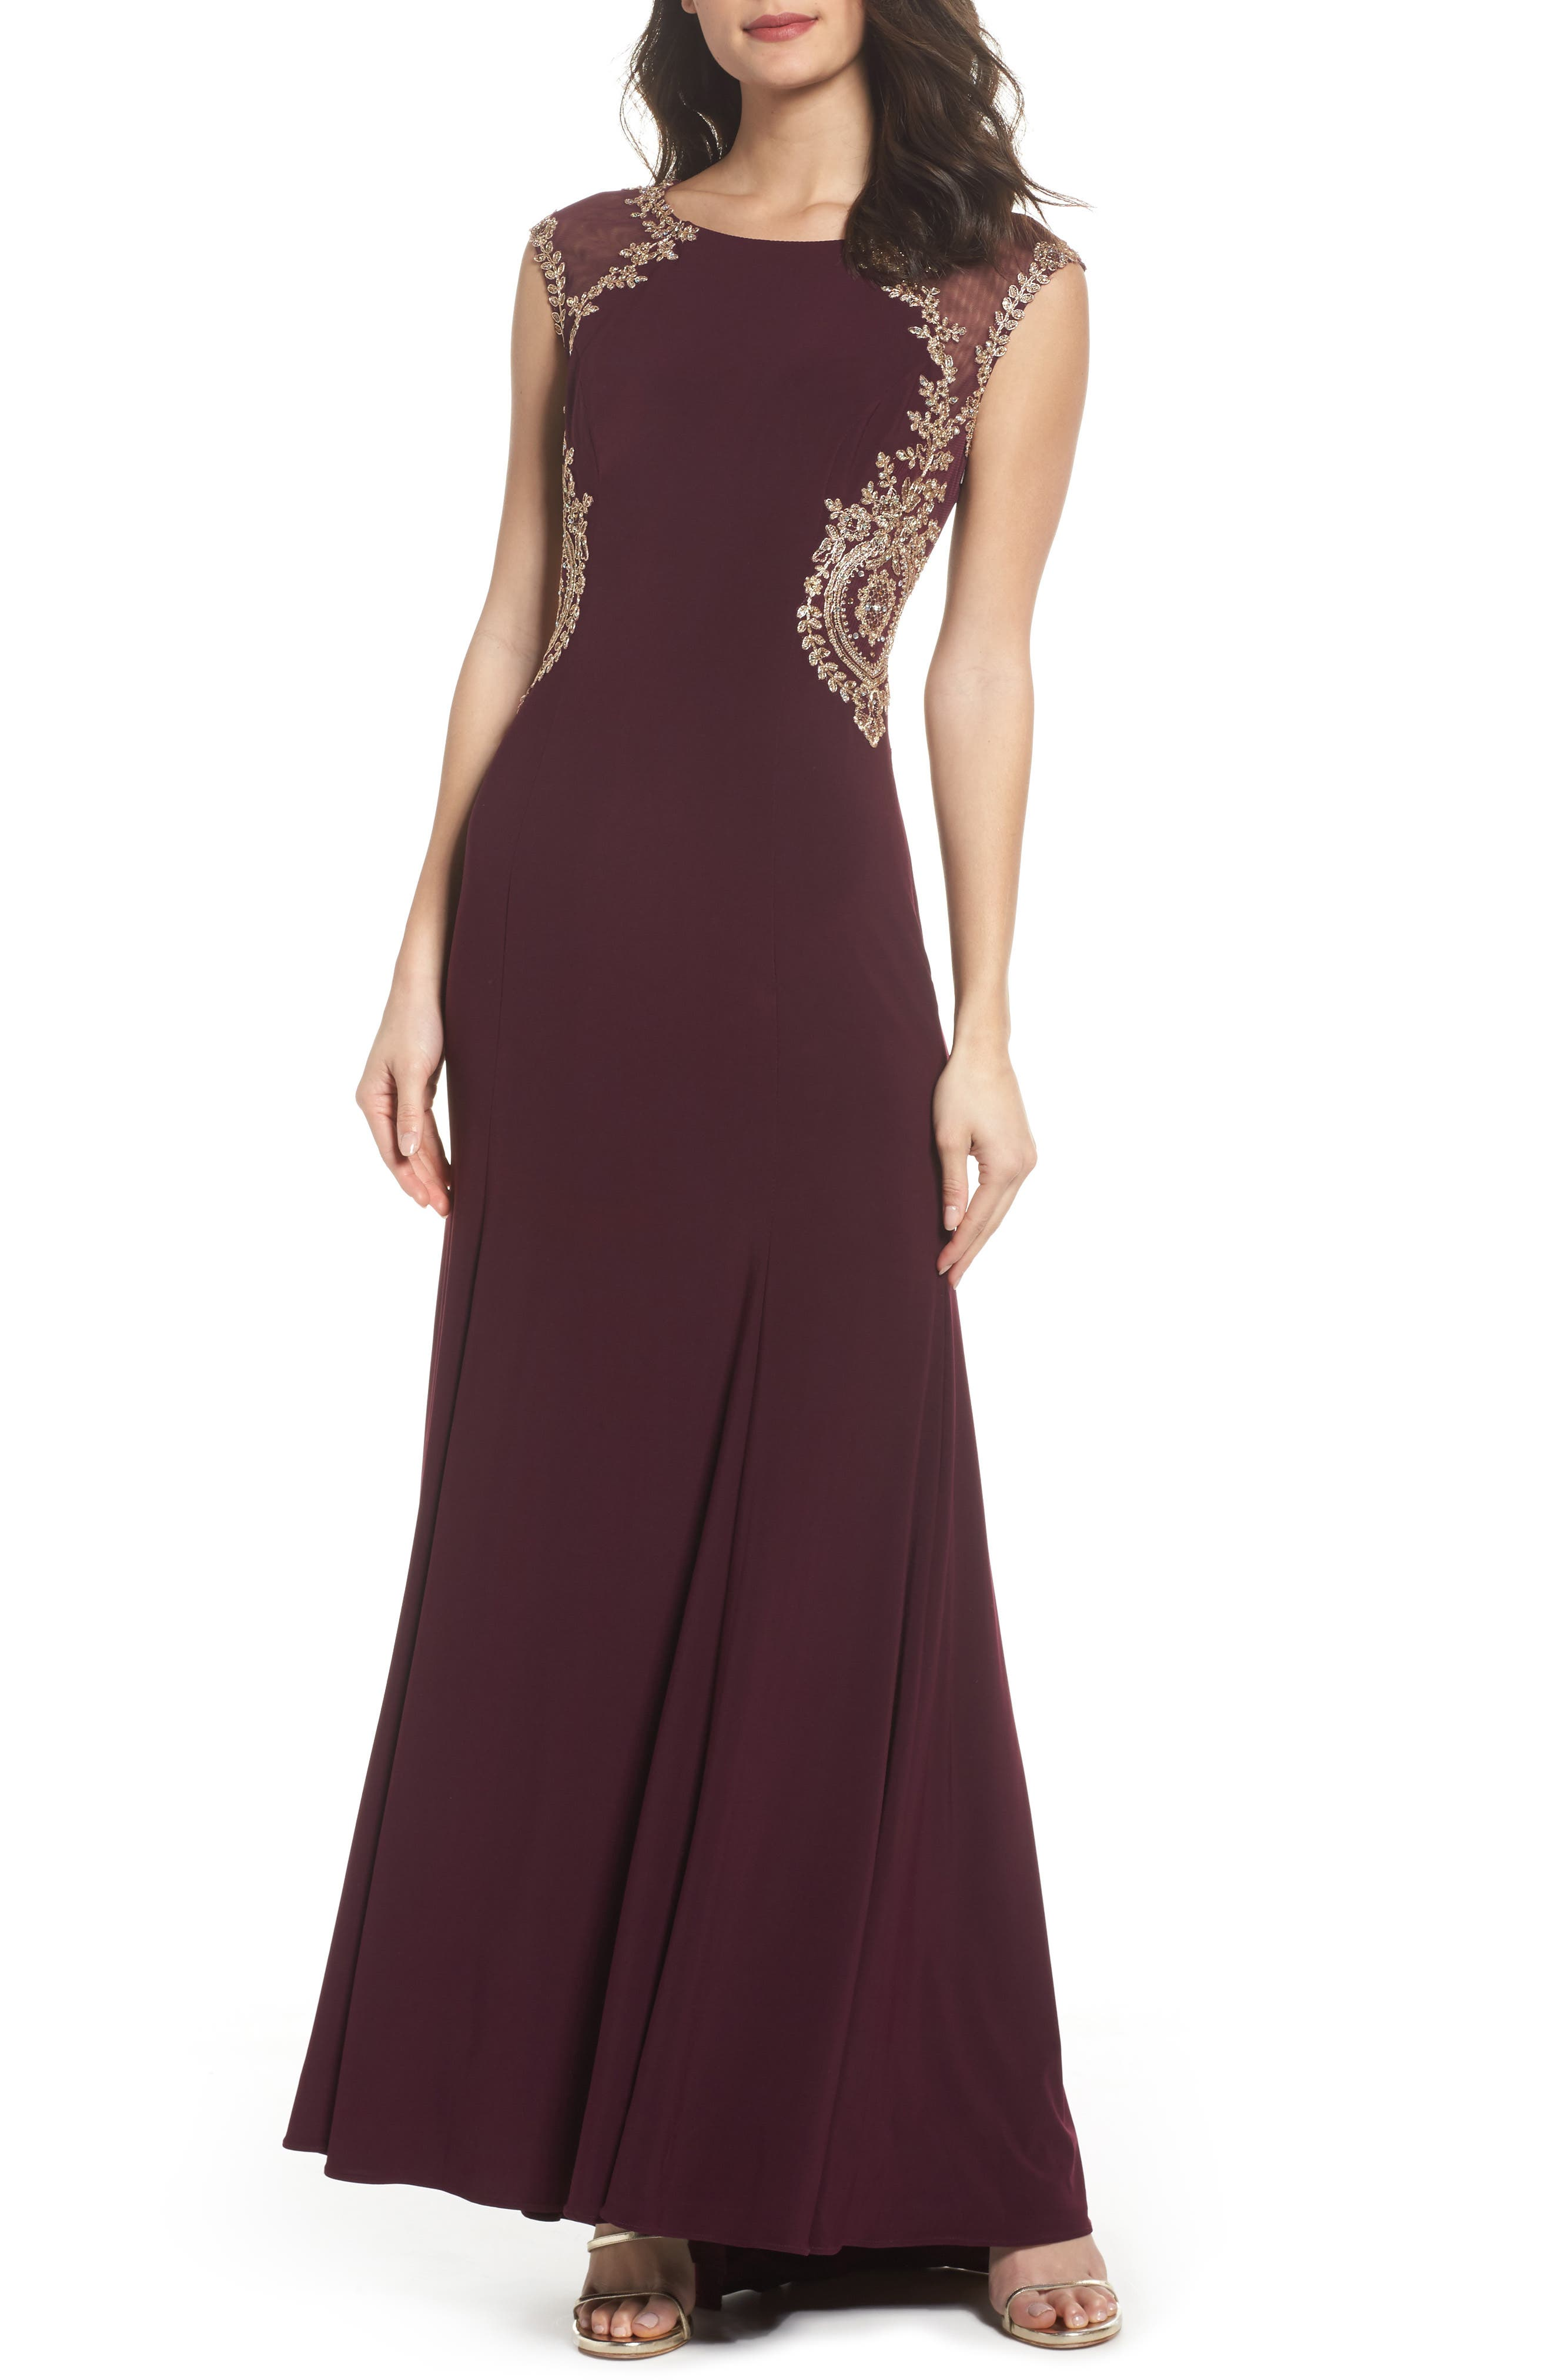 Alternate Image 1 Selected - Xscape Embellished Jersey Gown (Regular & Petite)